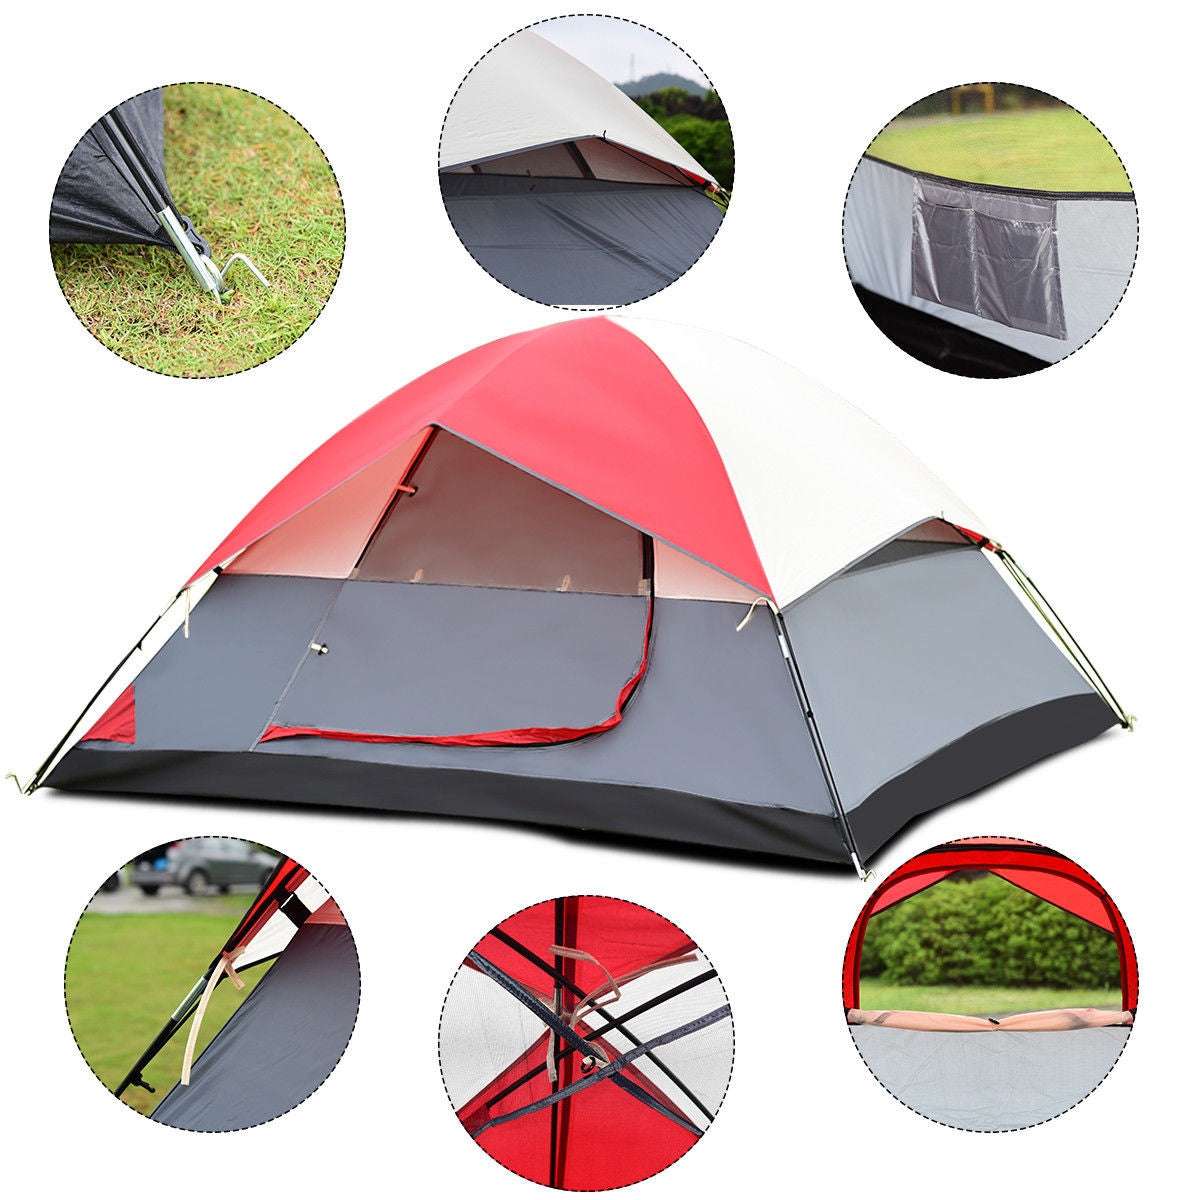 4 person camping tent features